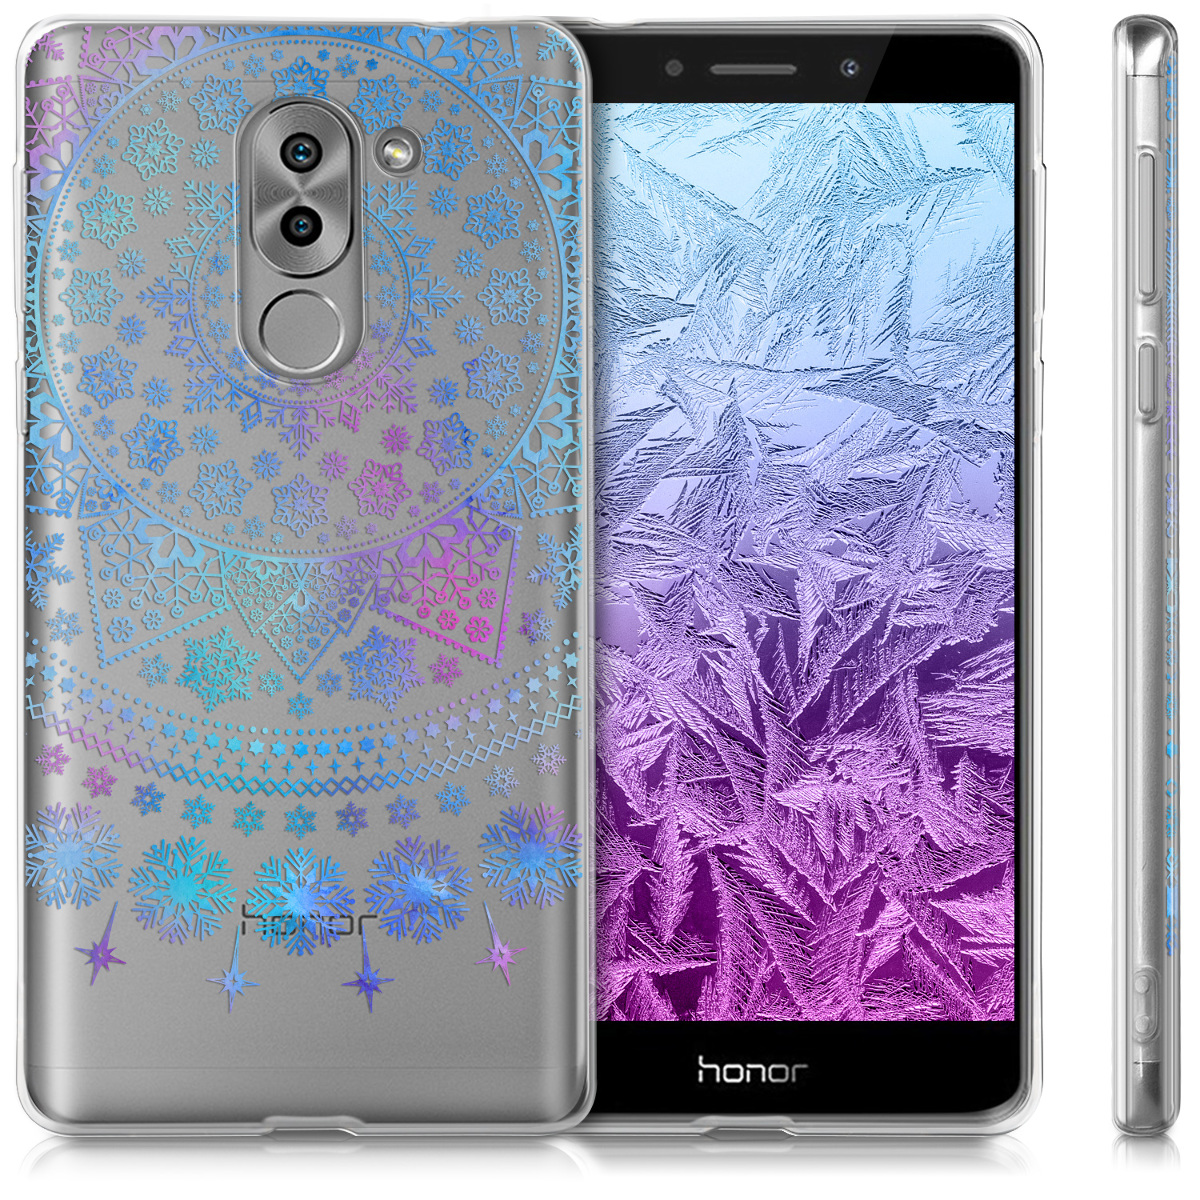 coque pour huawei honor 6x gr5 2017 mate 9 lite housse housse silicone ebay. Black Bedroom Furniture Sets. Home Design Ideas